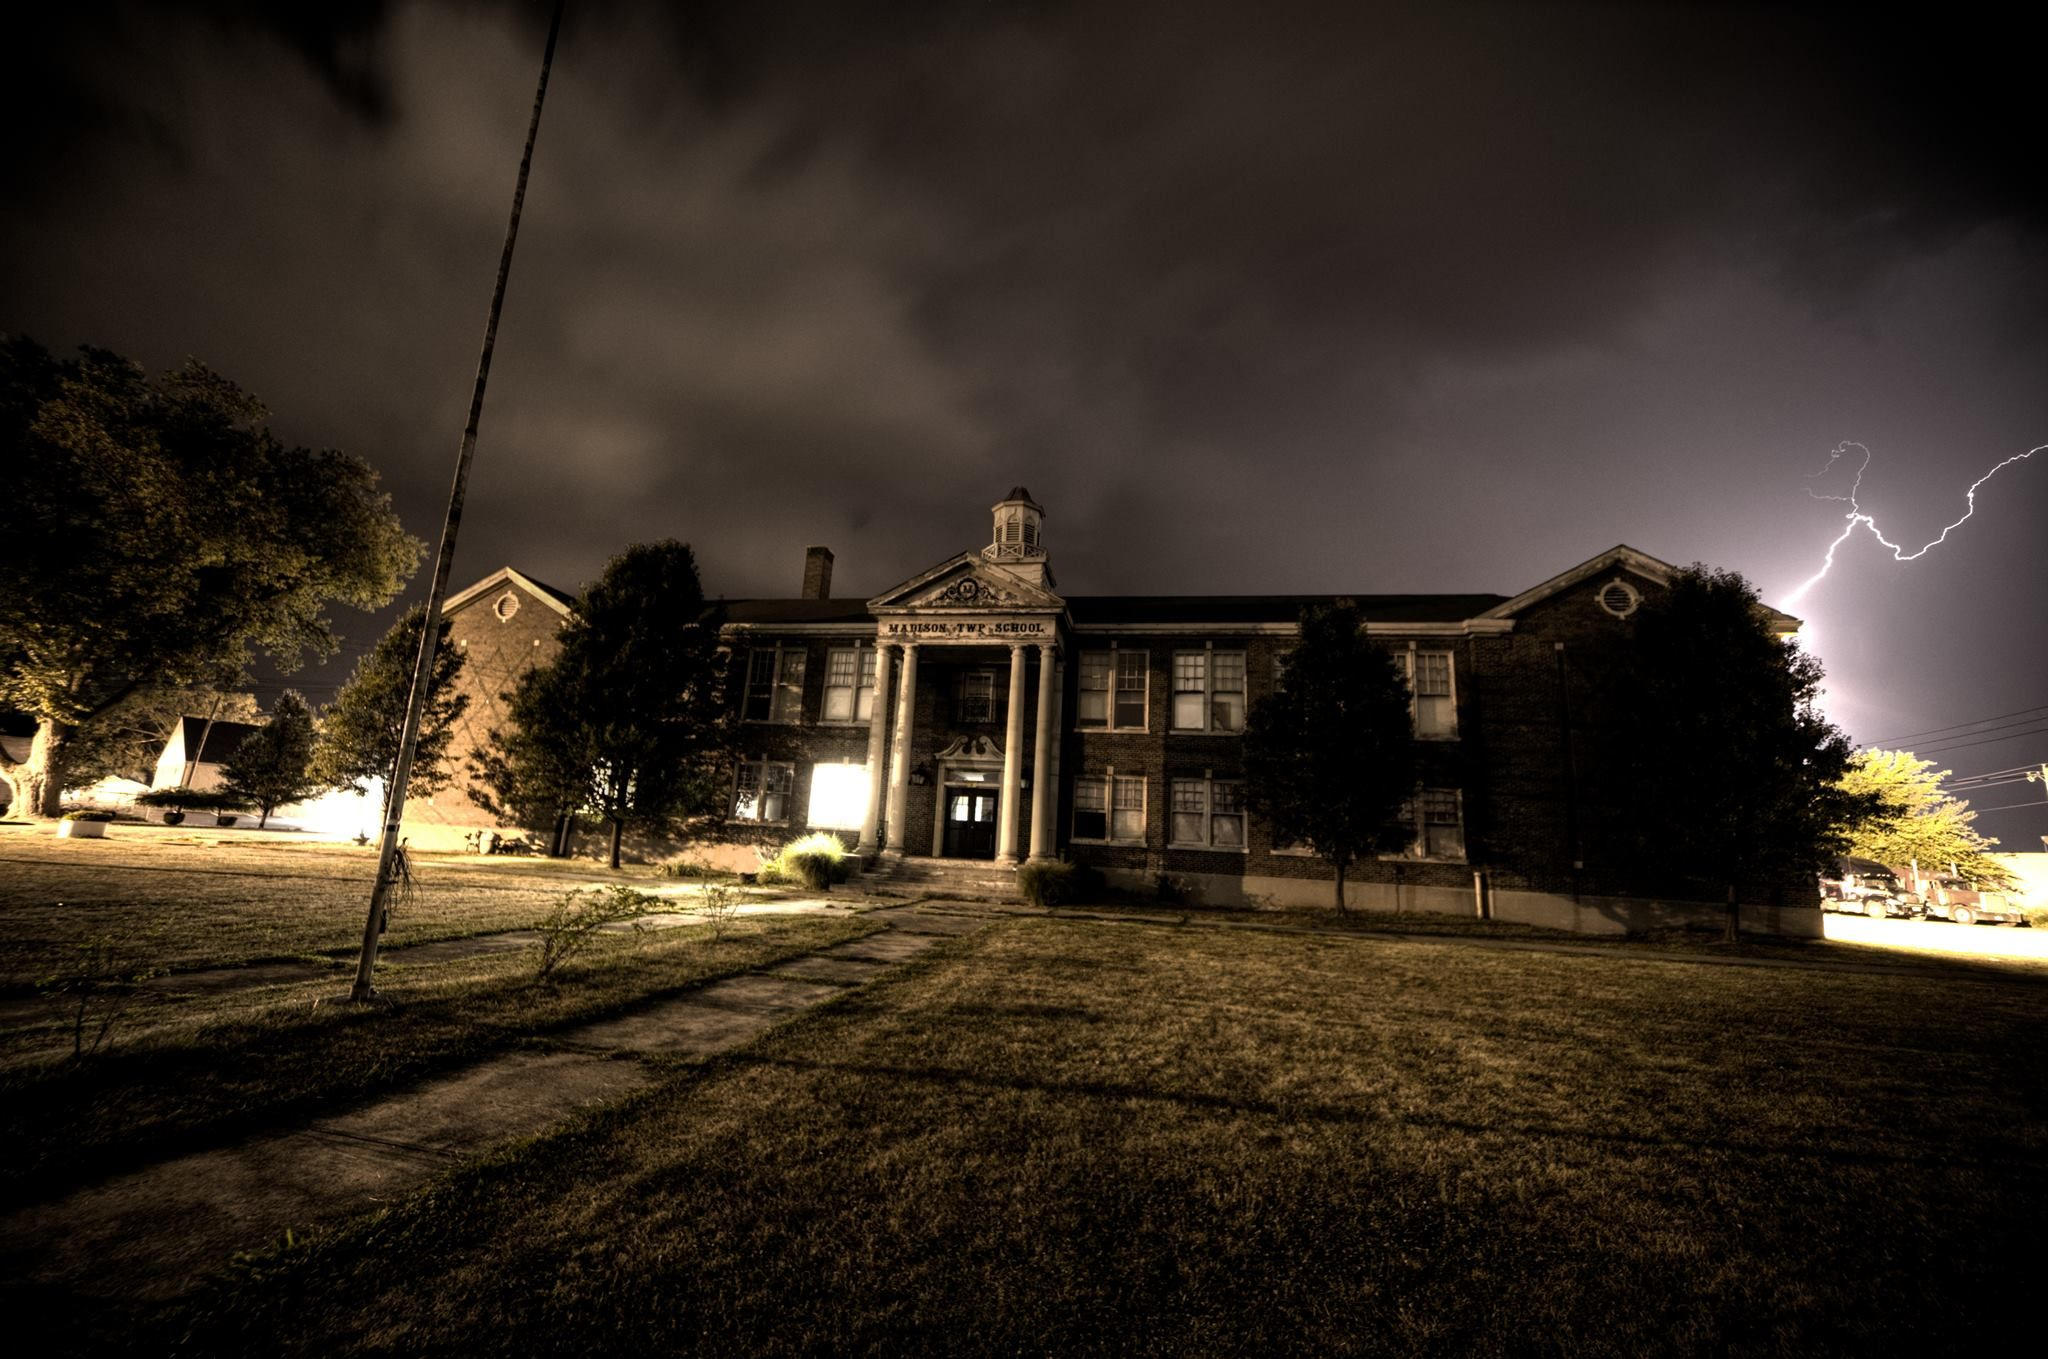 The Spookiest Abandoned Places in Every State